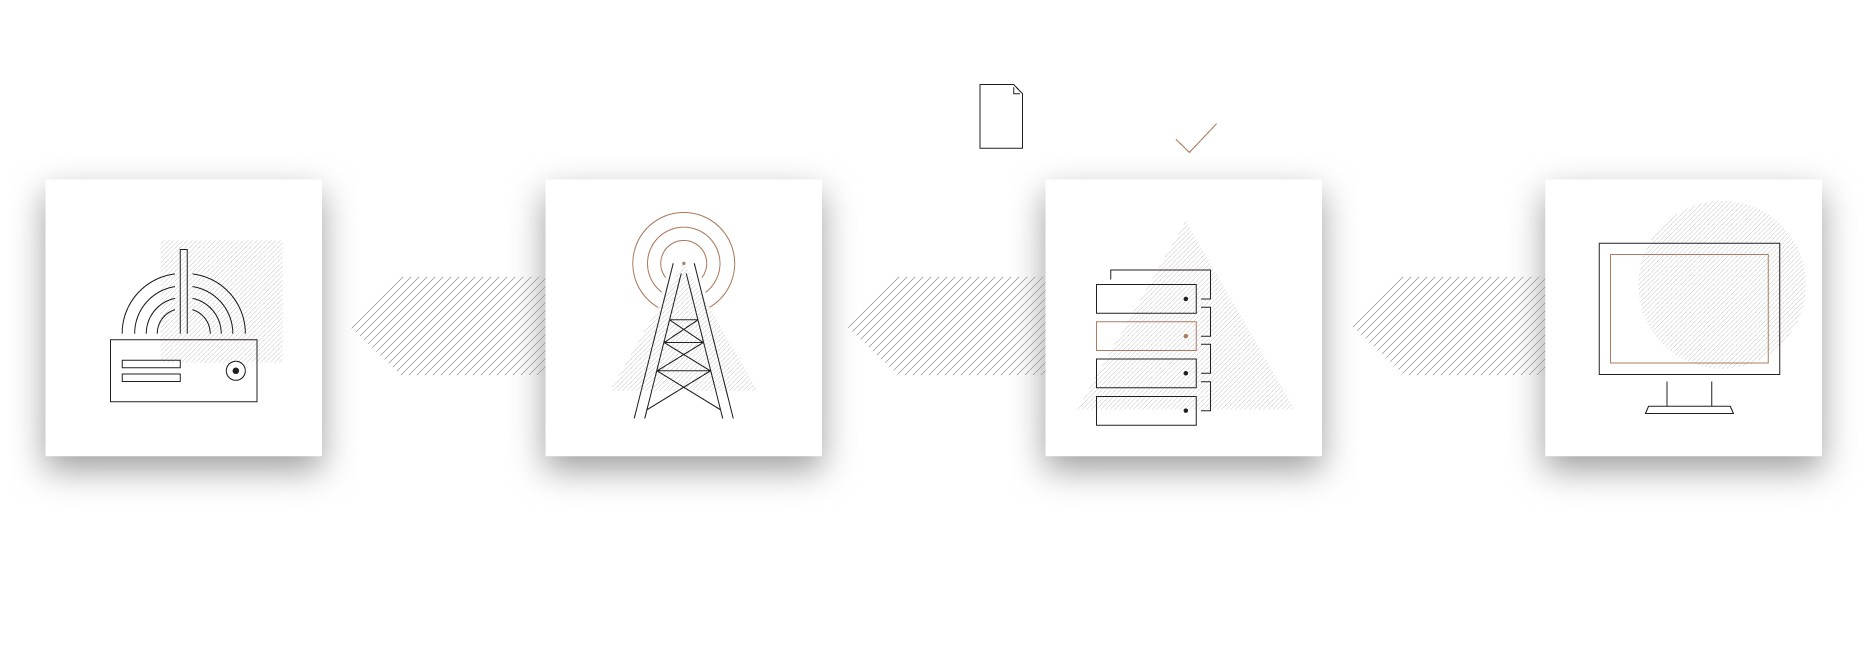 A graphic of a computer pointing to a server with a file and tick above it pointing to an antenna that points to a device